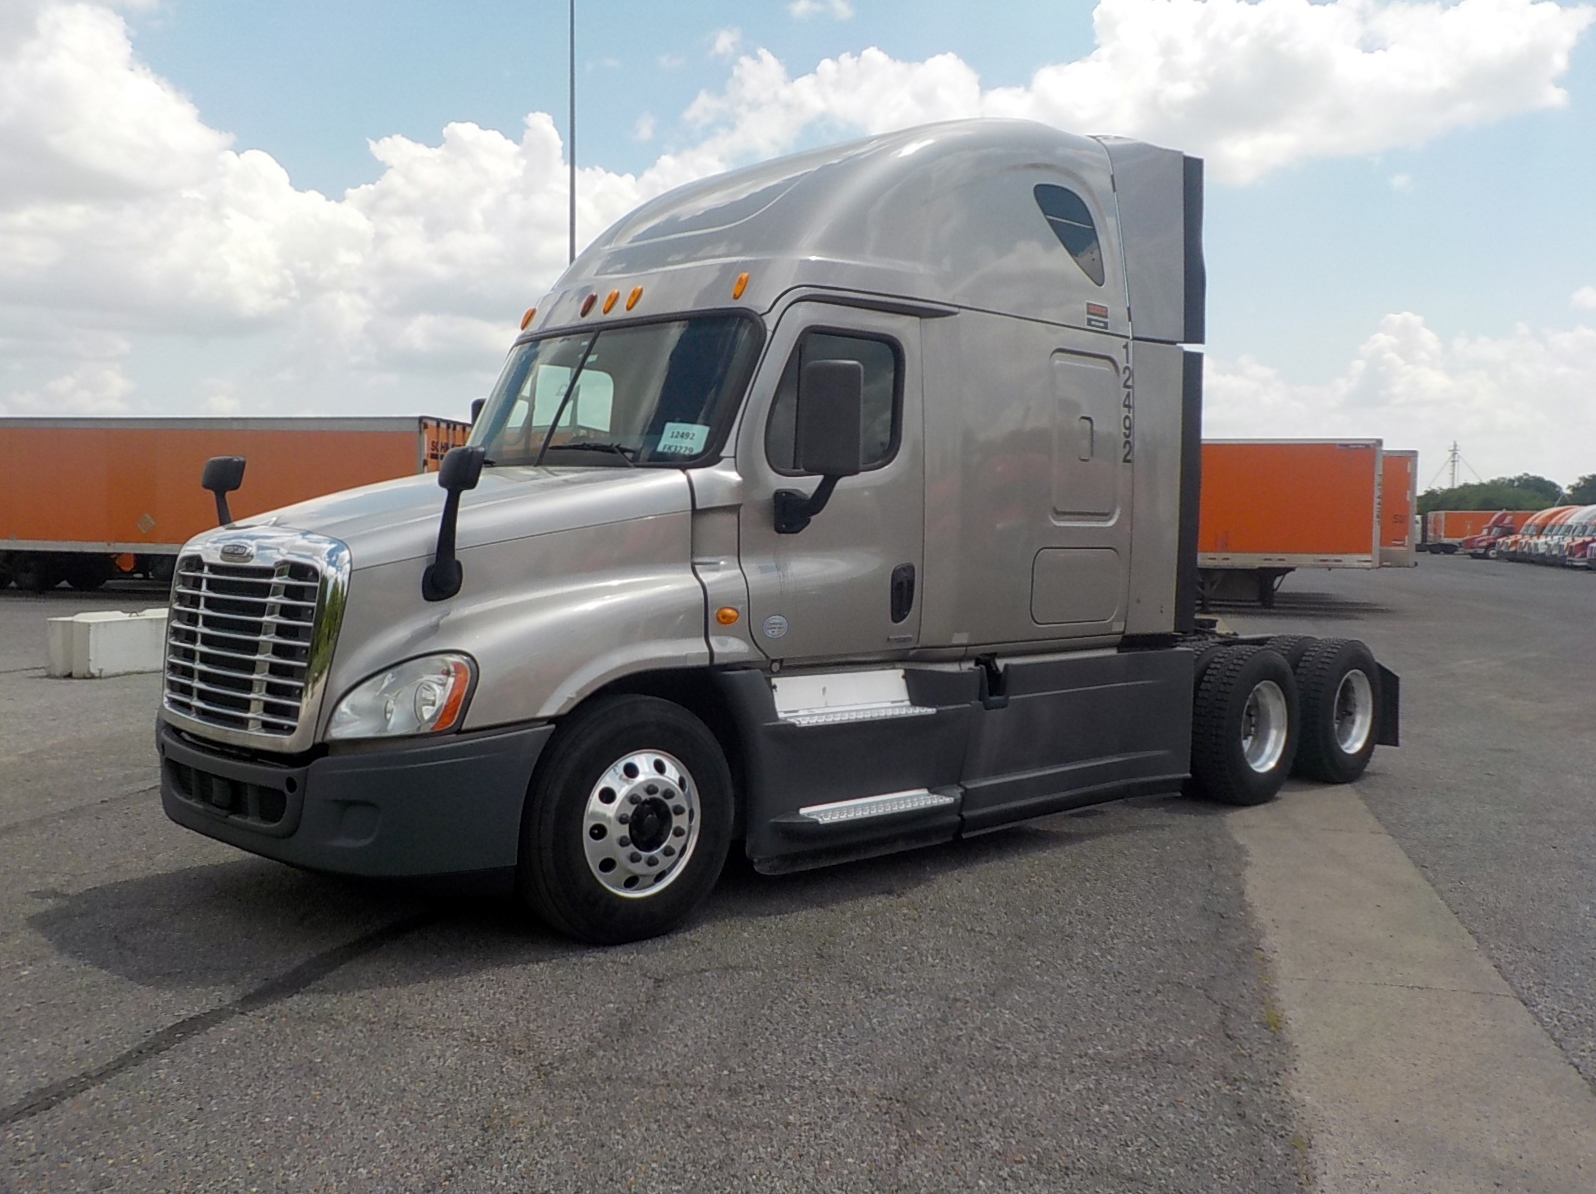 USED 2014 FREIGHTLINER CASCADIA SLEEPER TRUCK #84564